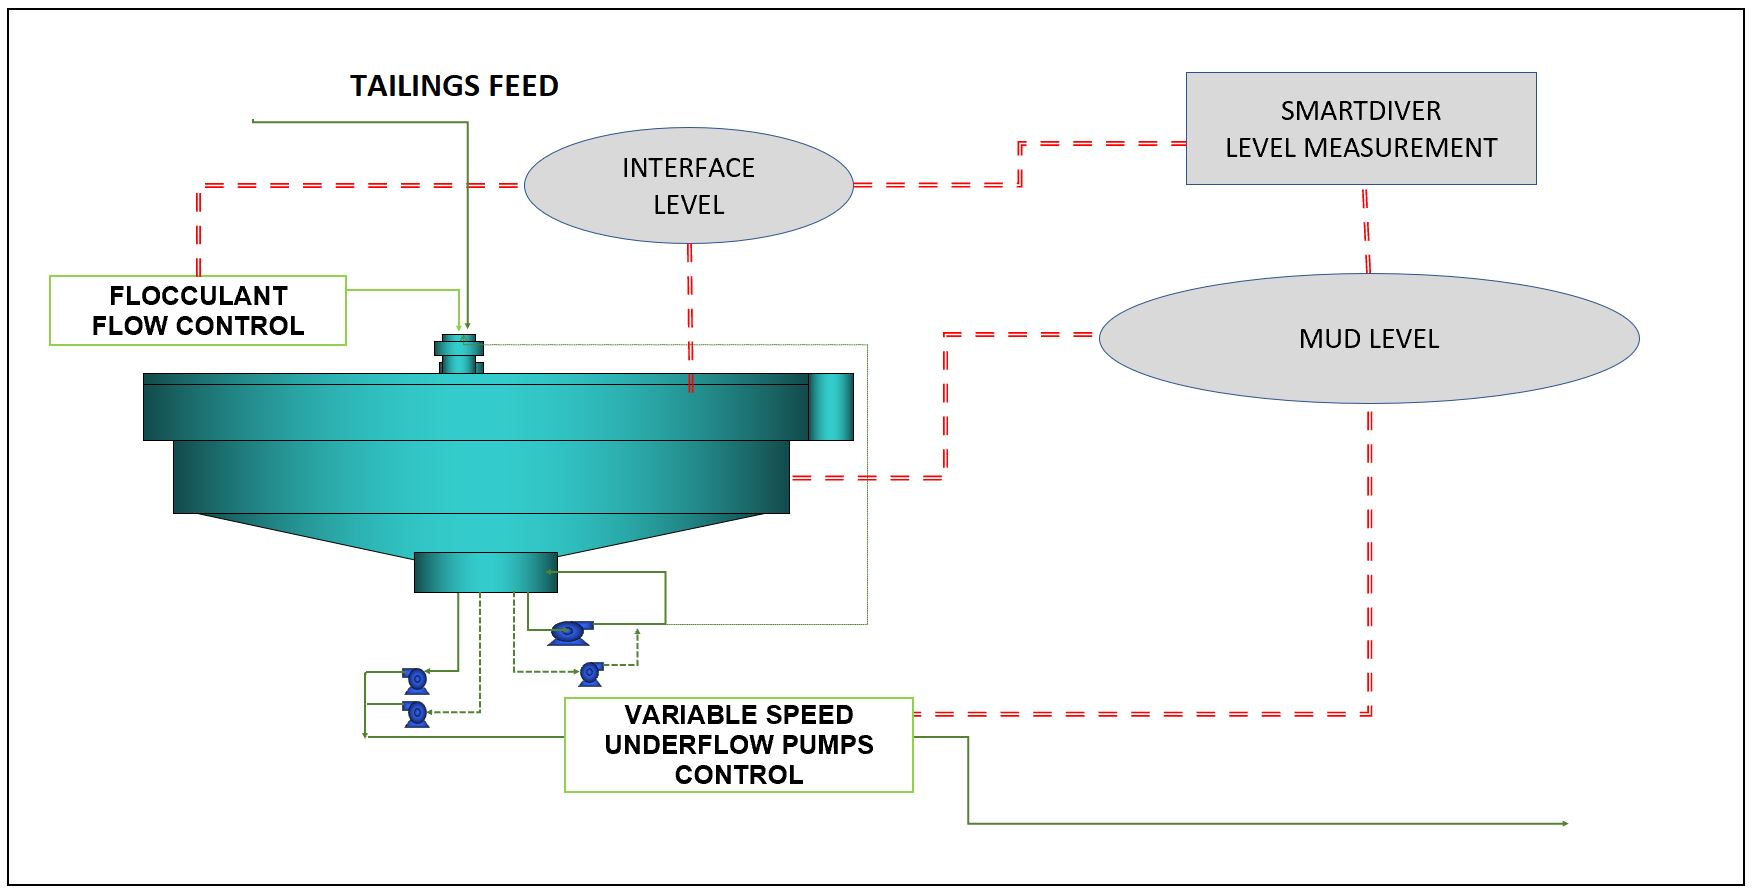 Control loop using mud and interface levels